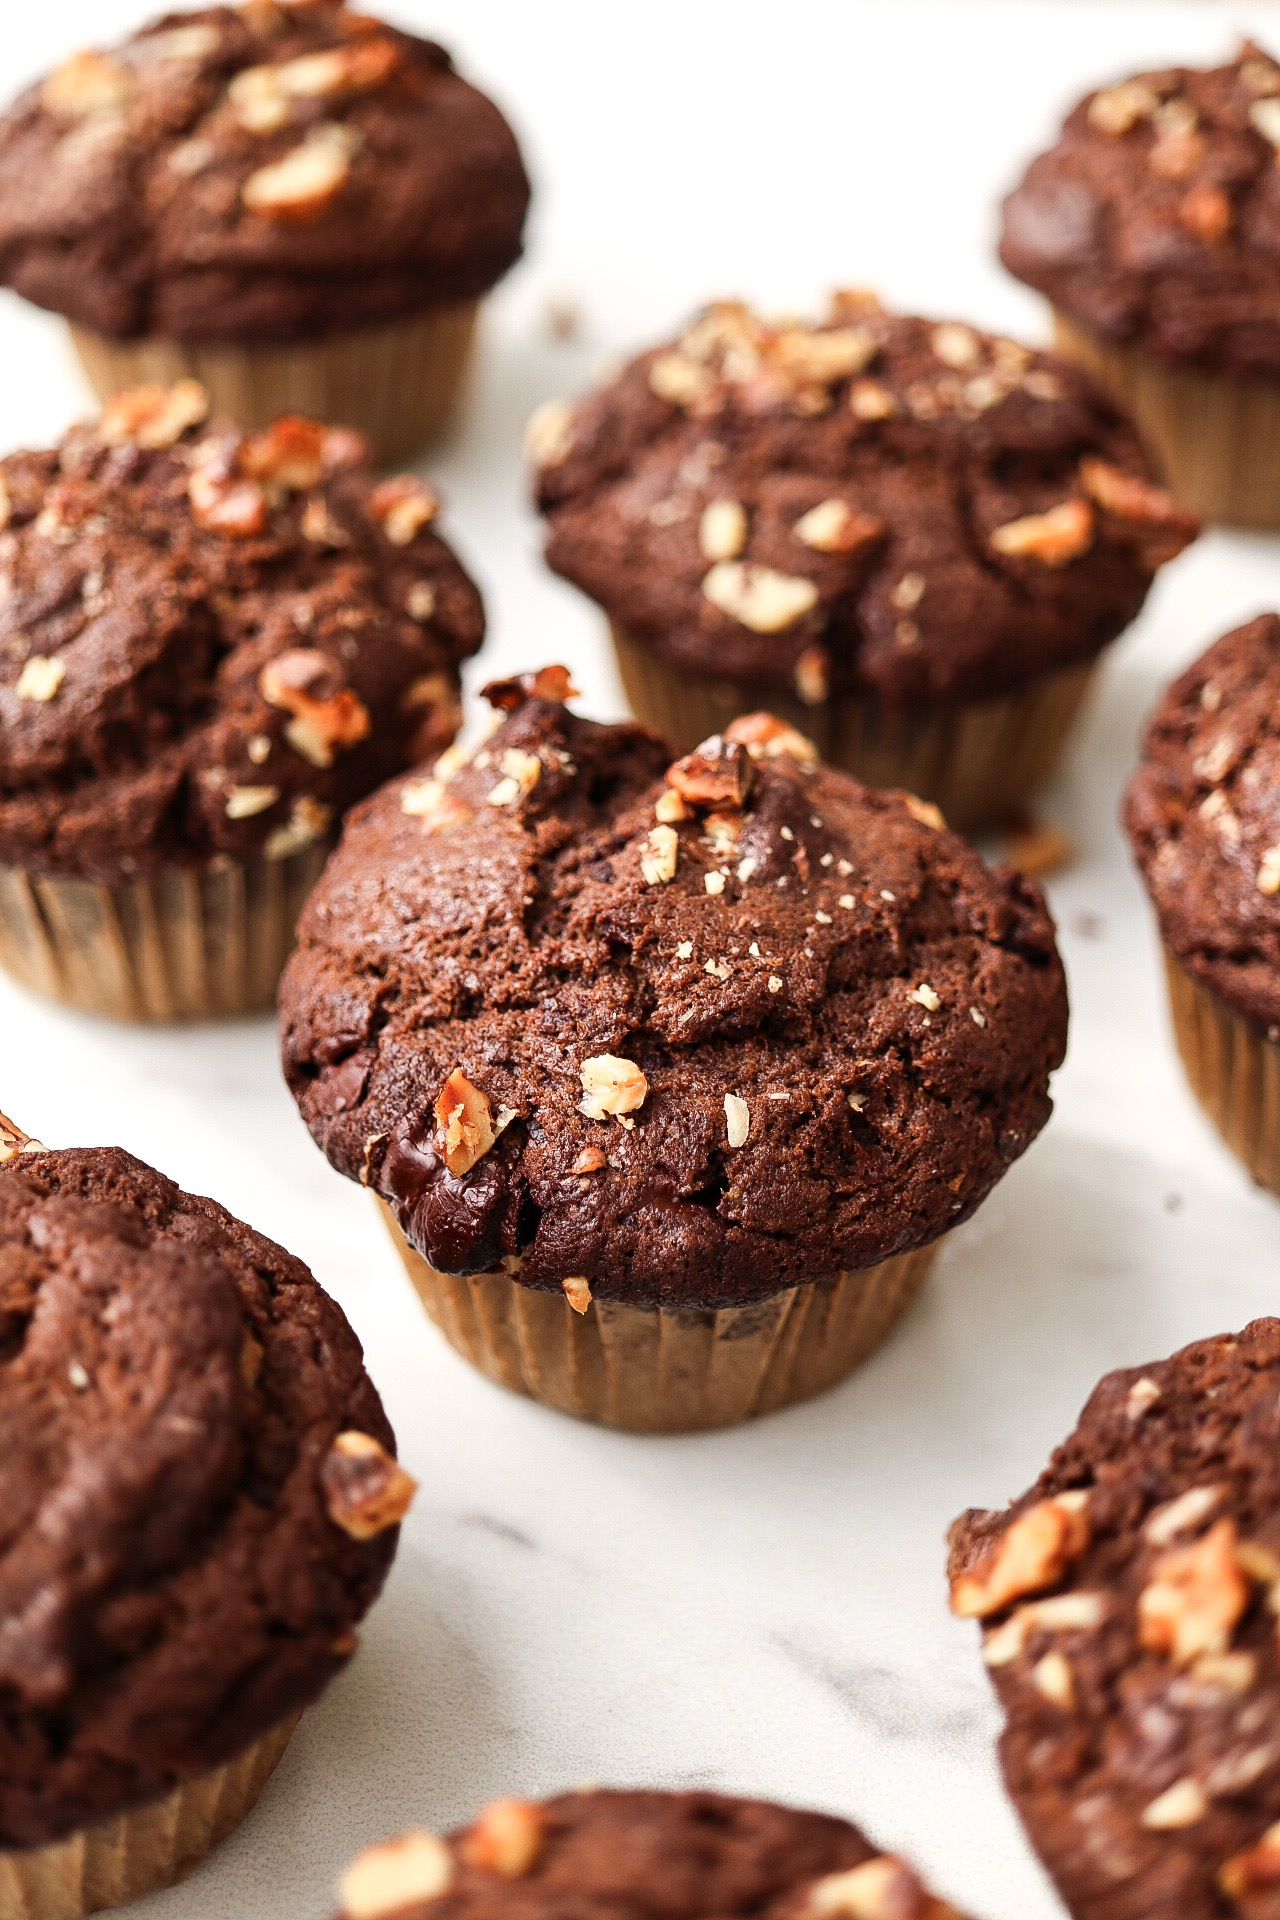 What I love about these muffins is that they have a crunchy muffin top - just the way a true coffee shop muffin should!